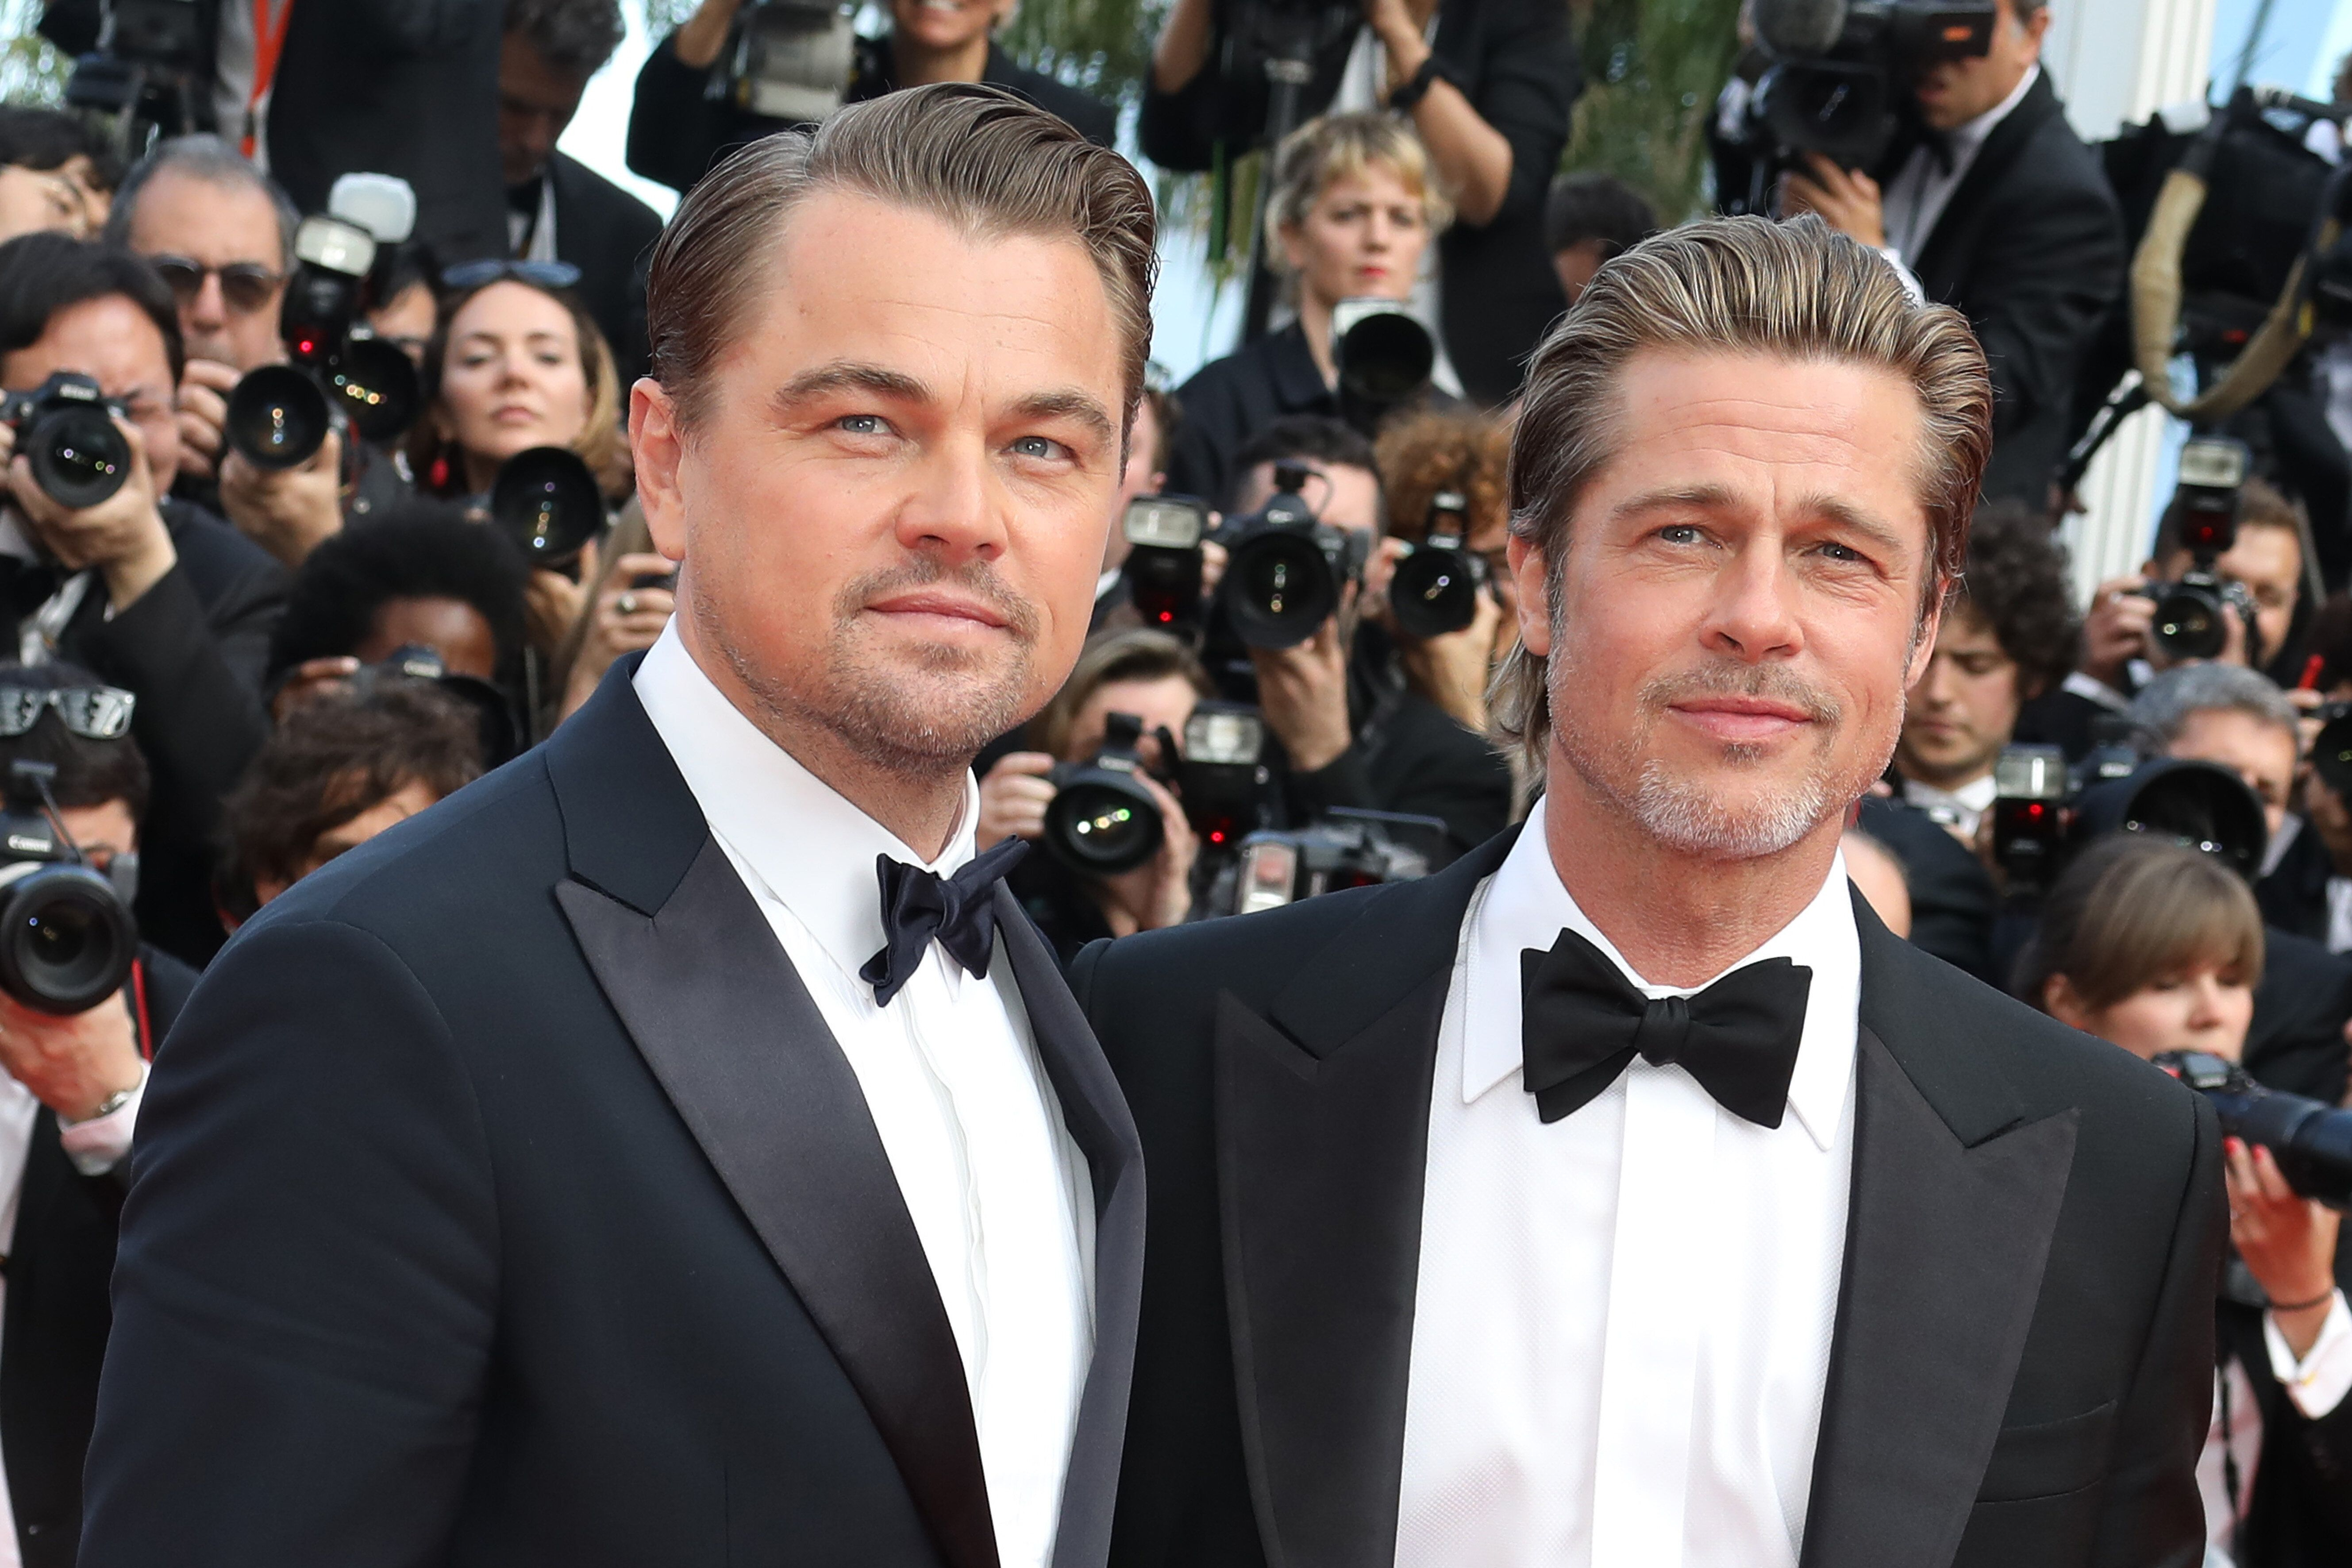 """CANNES, FRANCE - MAY 21: Brad Pitt and Leonardo DiCaprio attend the screening of """"Once Upon A Time In Hollywood"""" during the 72nd annual Cannes Film Festival on May 21, 2019 in Cannes, France. (Photo by Tony Barson/FilmMagic)"""